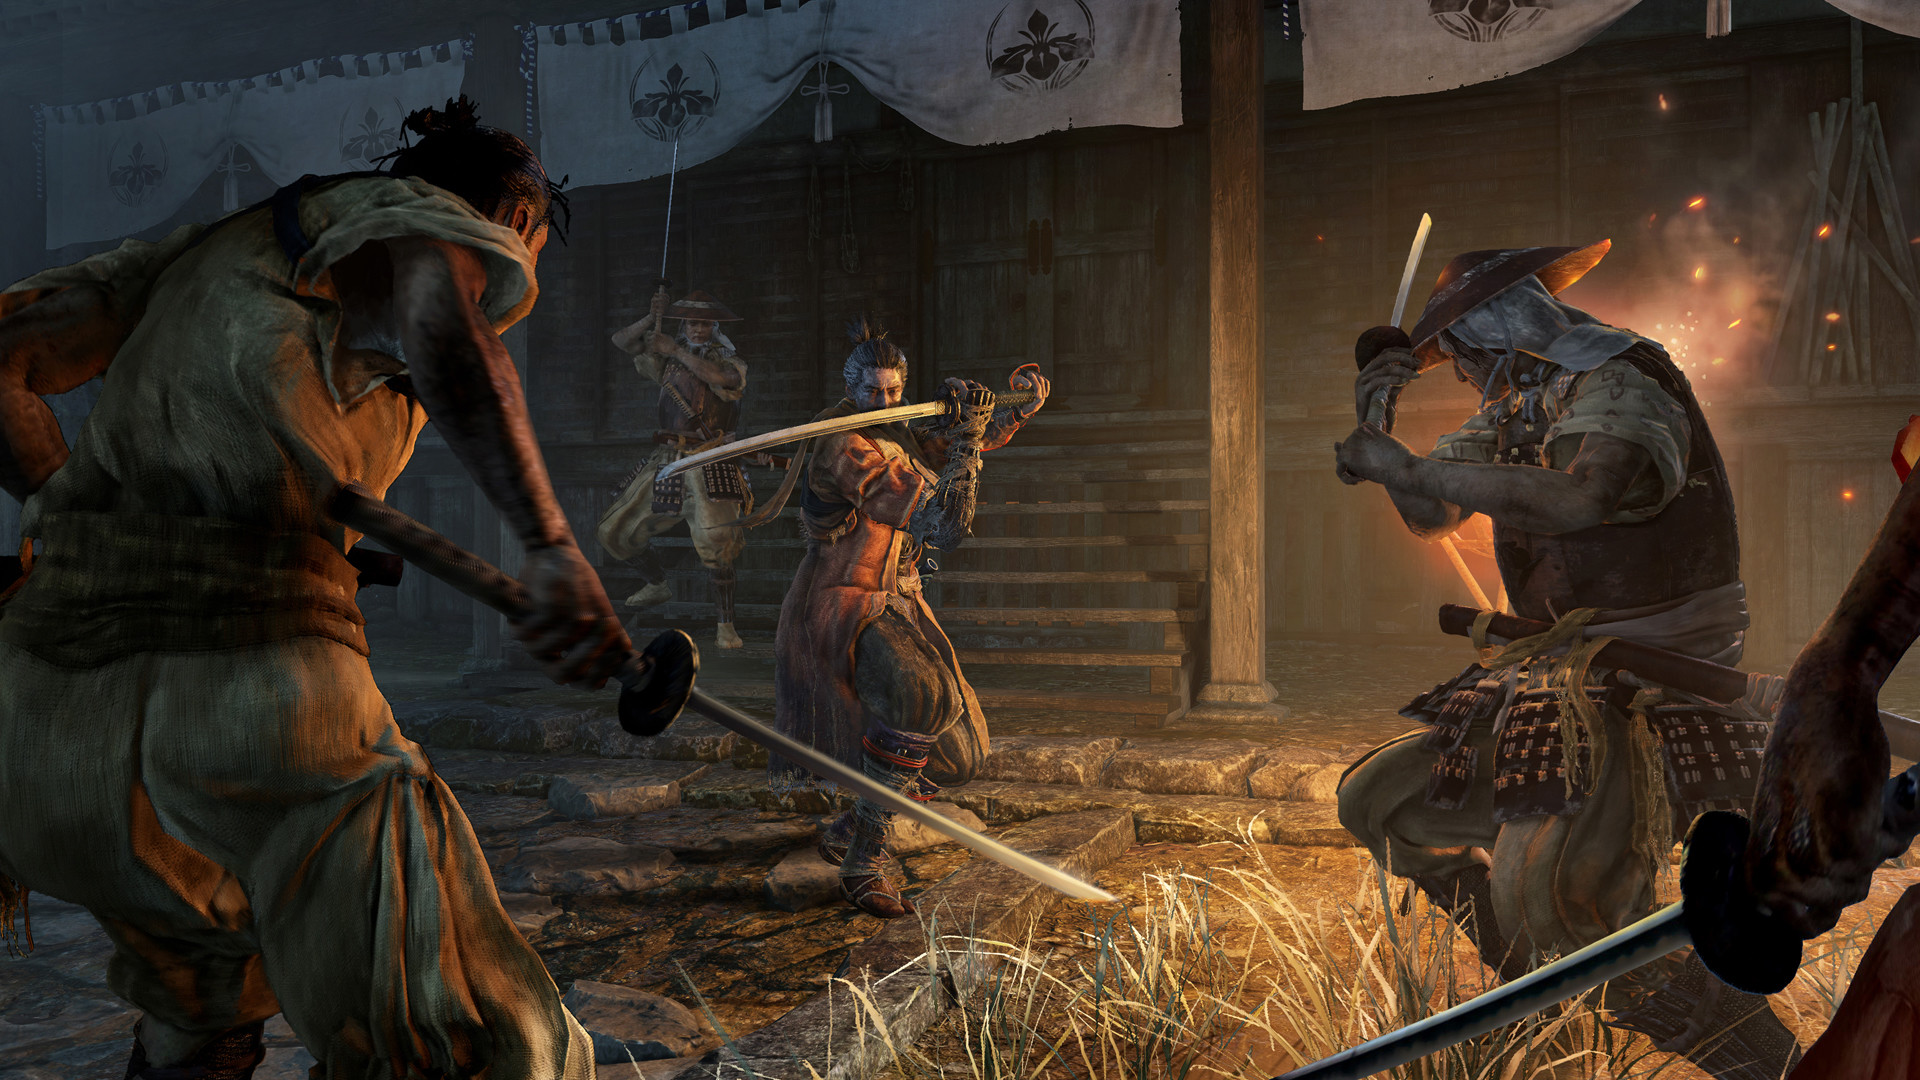 Sekiro: Shadows Die Twice [PC PS4 XONE] Ss_2036ad636be8fa2c4bf926004f369bb97490350a.1920x1080